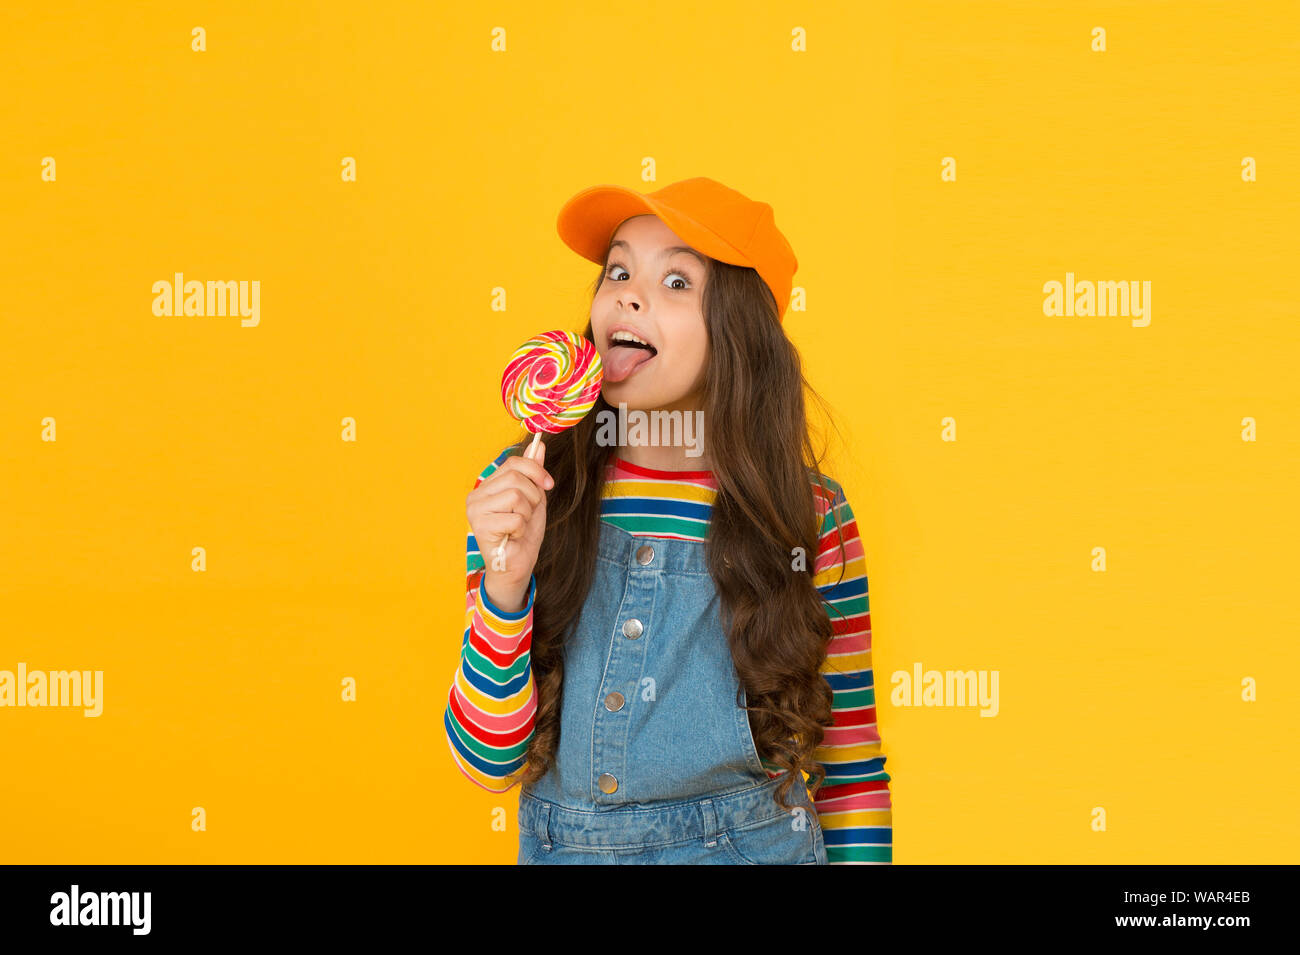 Childrens Candy Stock Photos Childrens Candy Stock Images